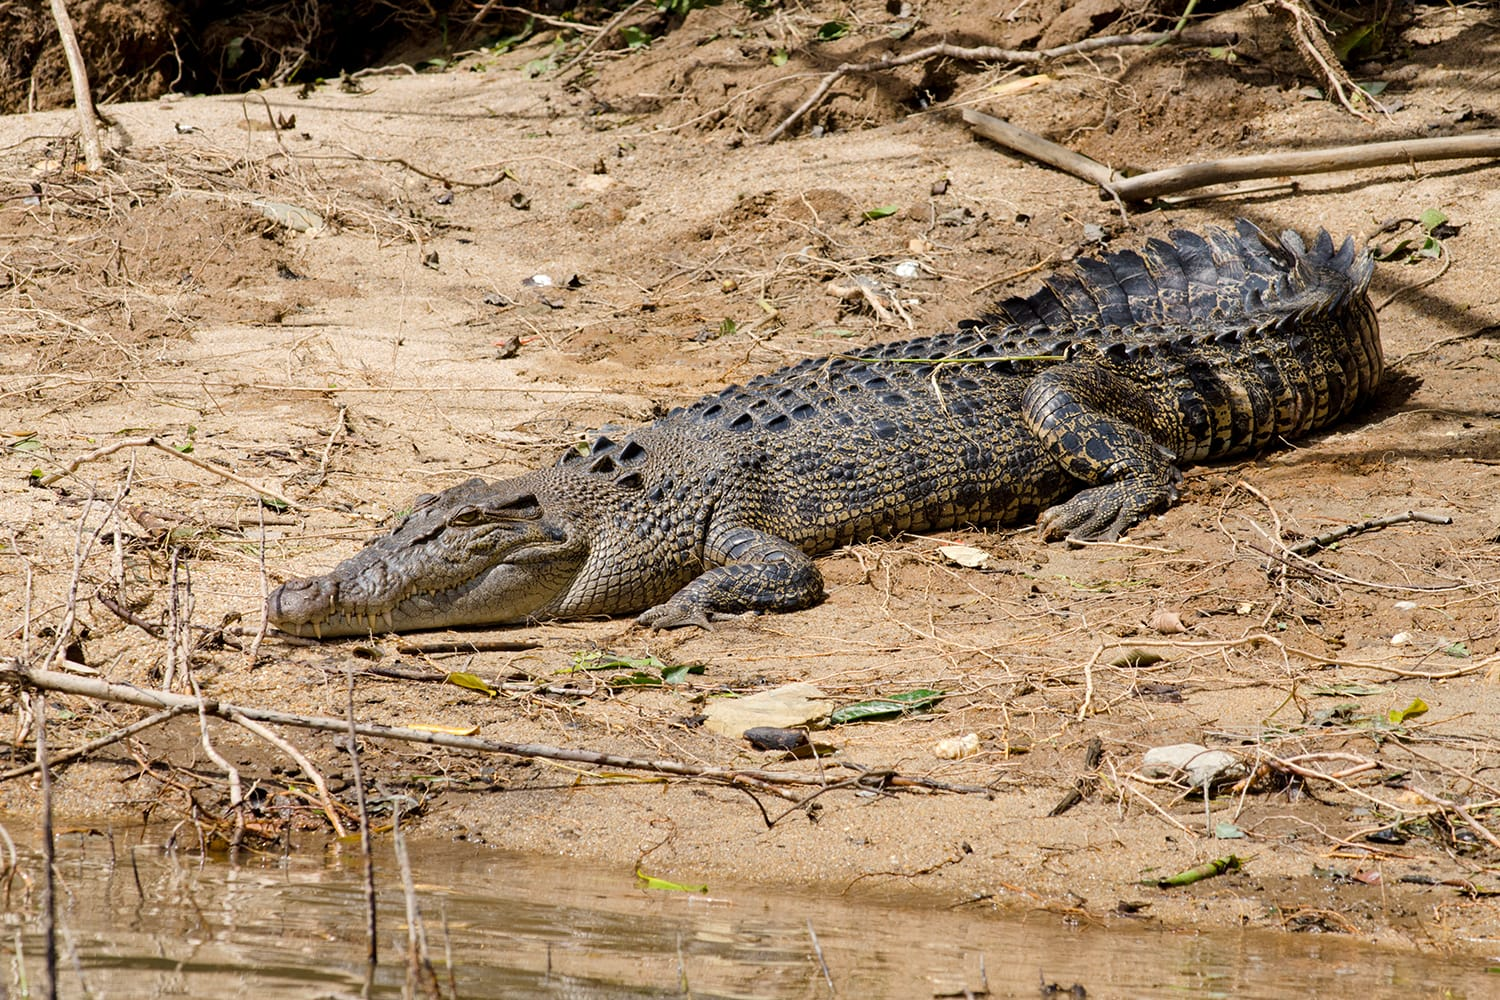 Female saltwater crocodile on muddy riverbank at Daintree National Park, Australia